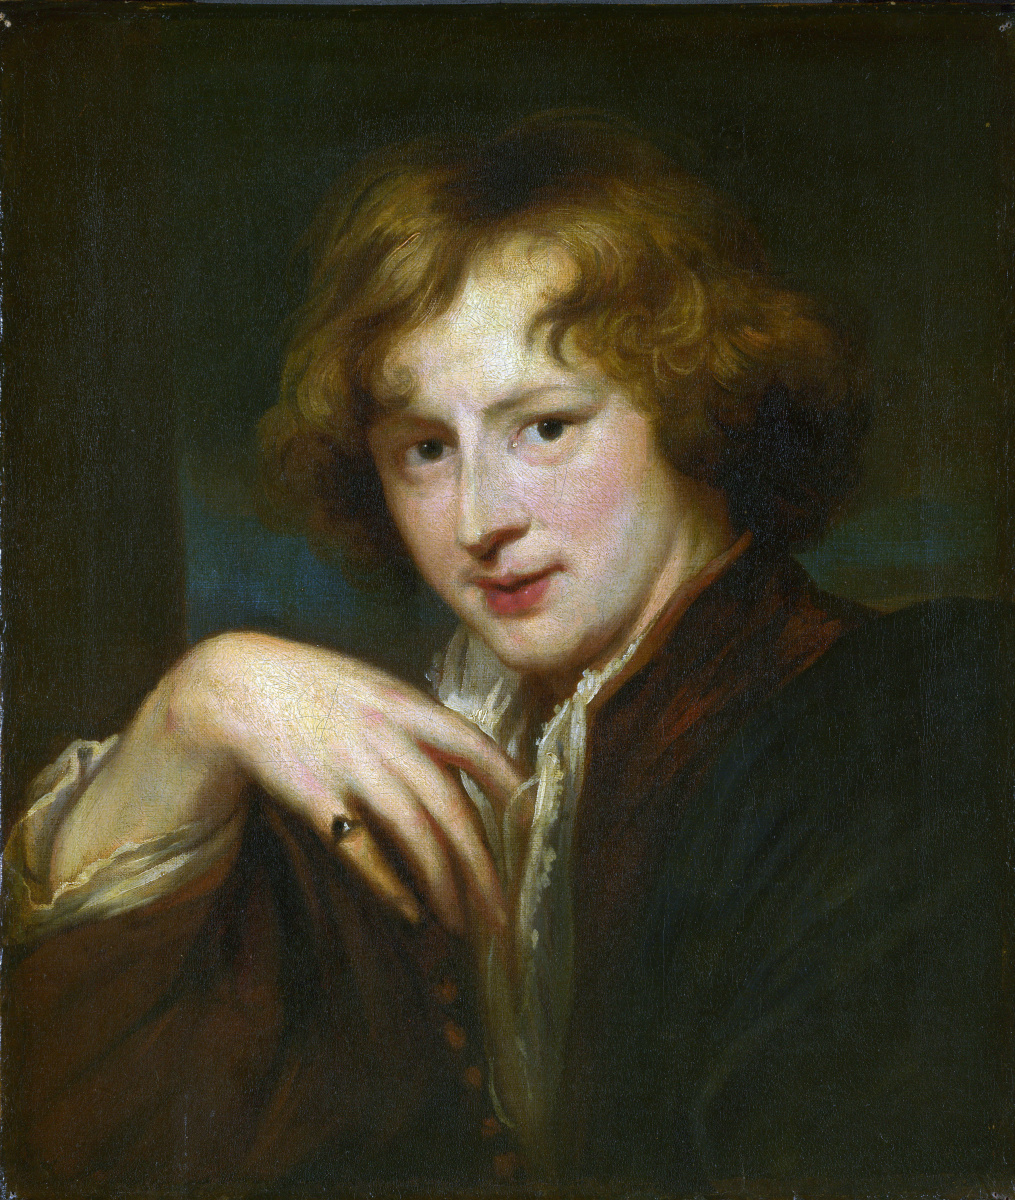 Anthony van Dyck. Portrait of the artist. Copy 1750 - 1825 years